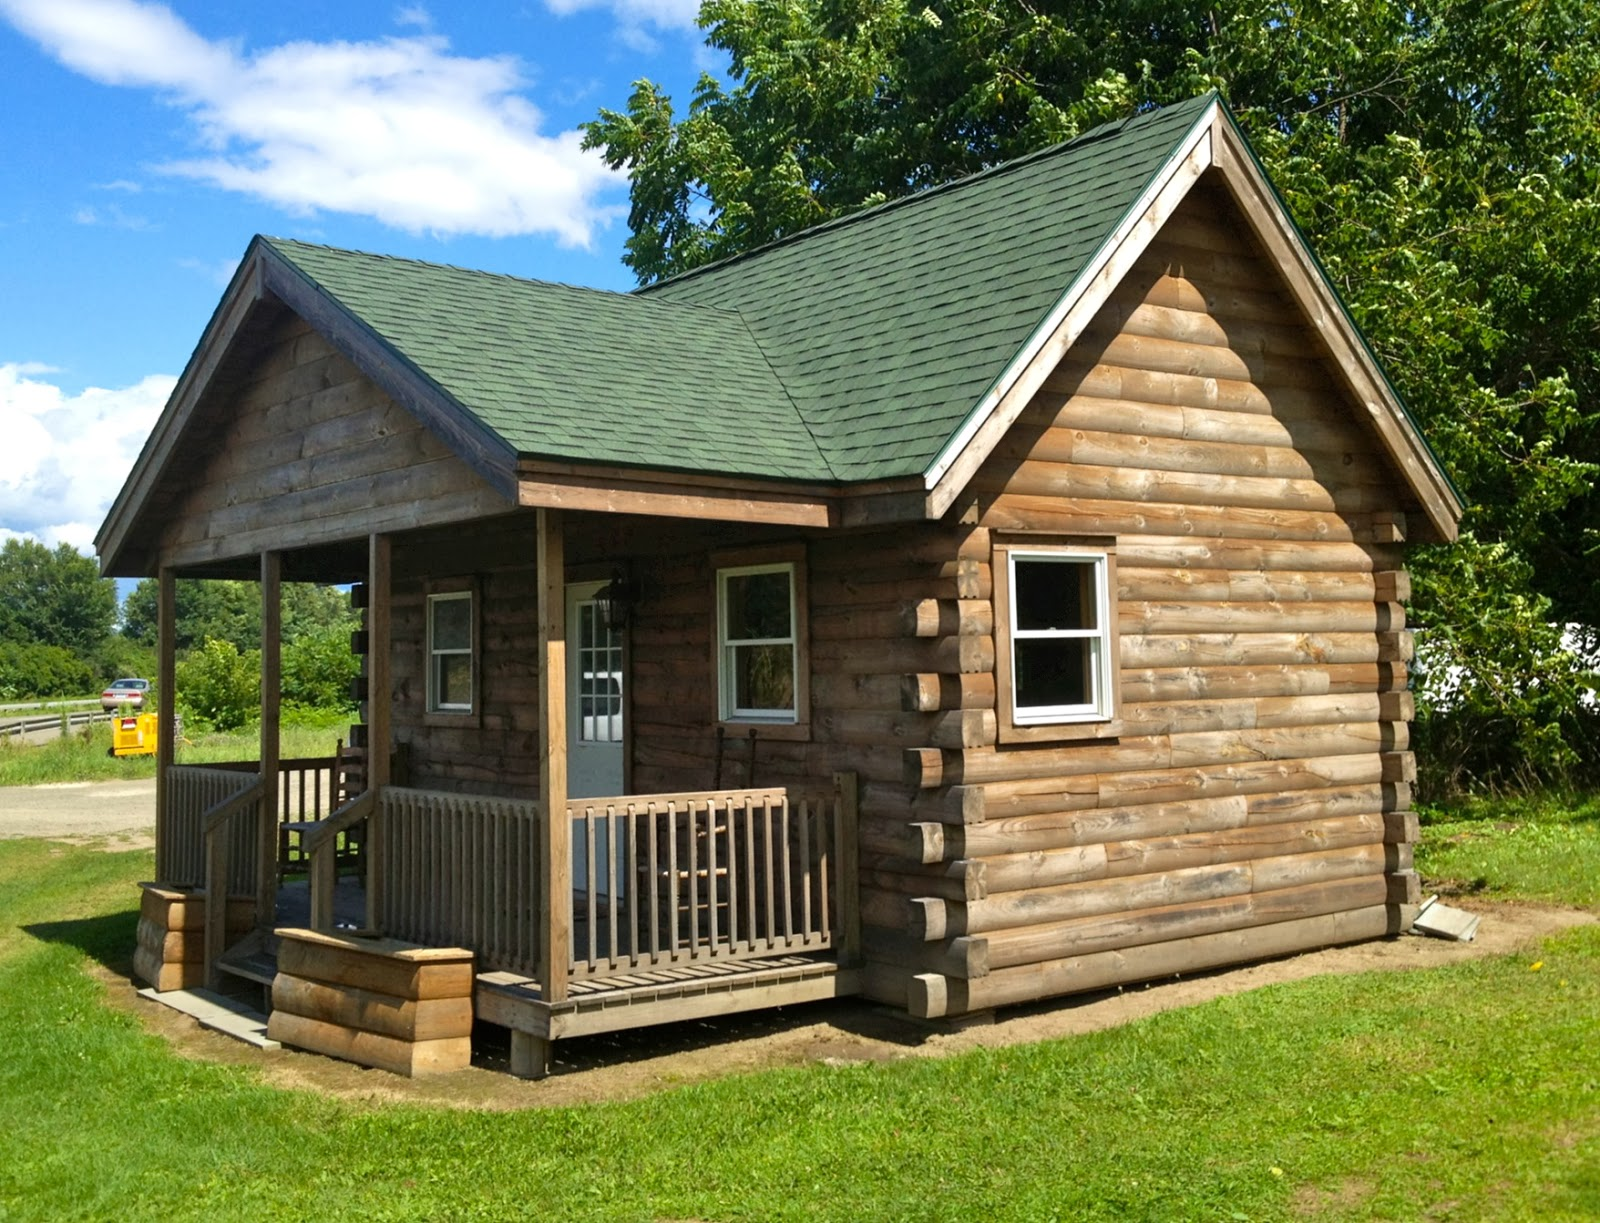 Small scale homes tiny home near binghamton ny for Small house design